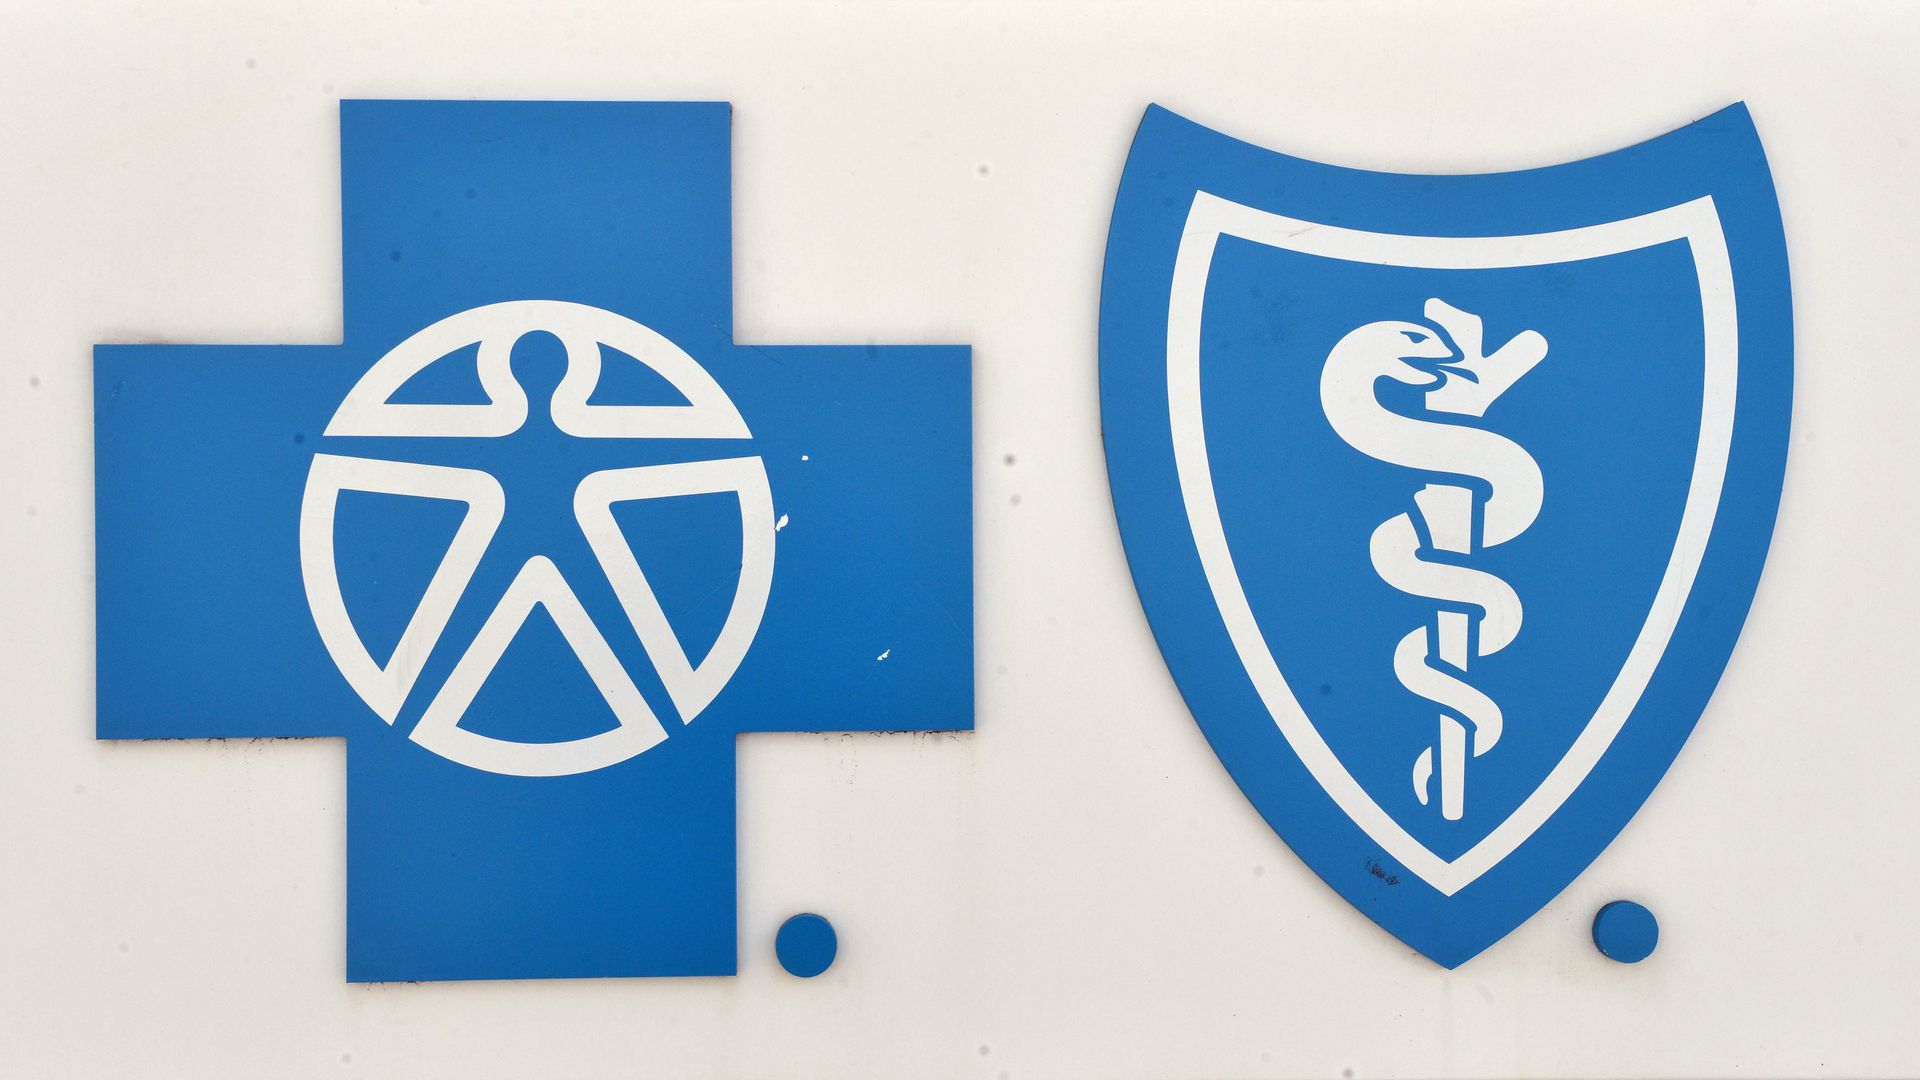 The Blue Cross and Blue Shield logo on a white sign.